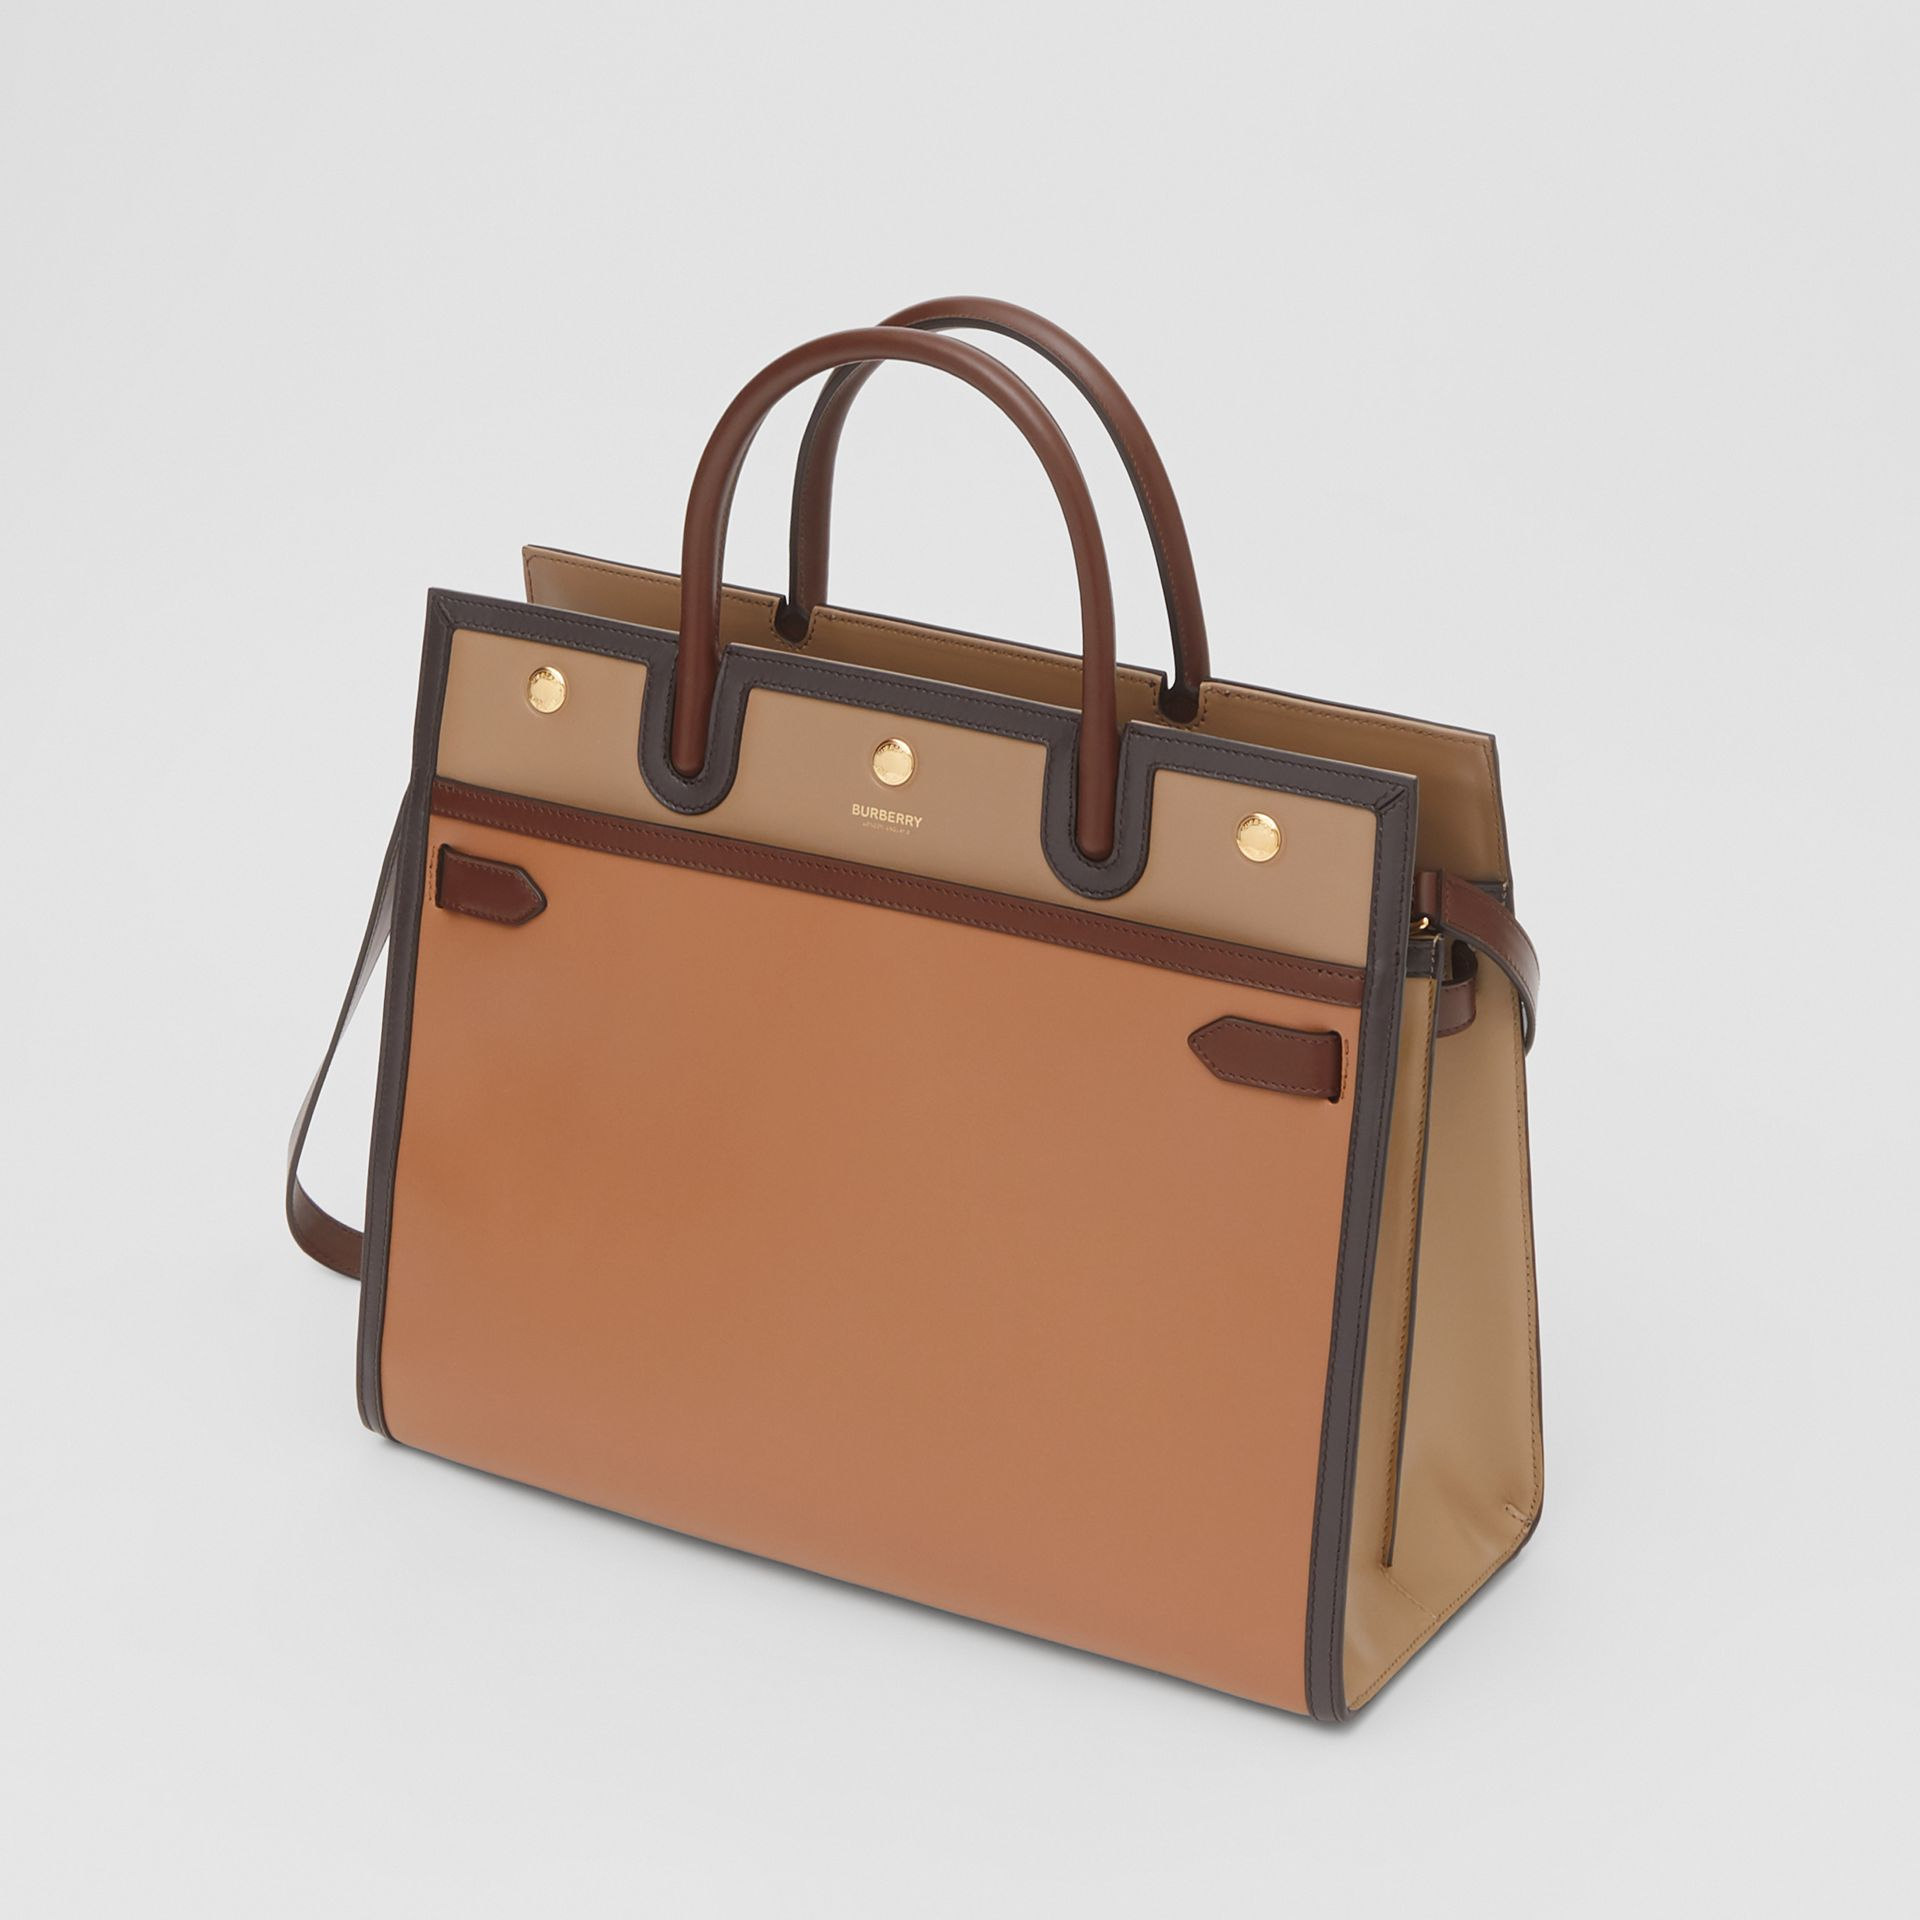 Medium Colour Block Leather Two-handle Title Bag in Soft Fawn - Women | Burberry United States - gallery image 3